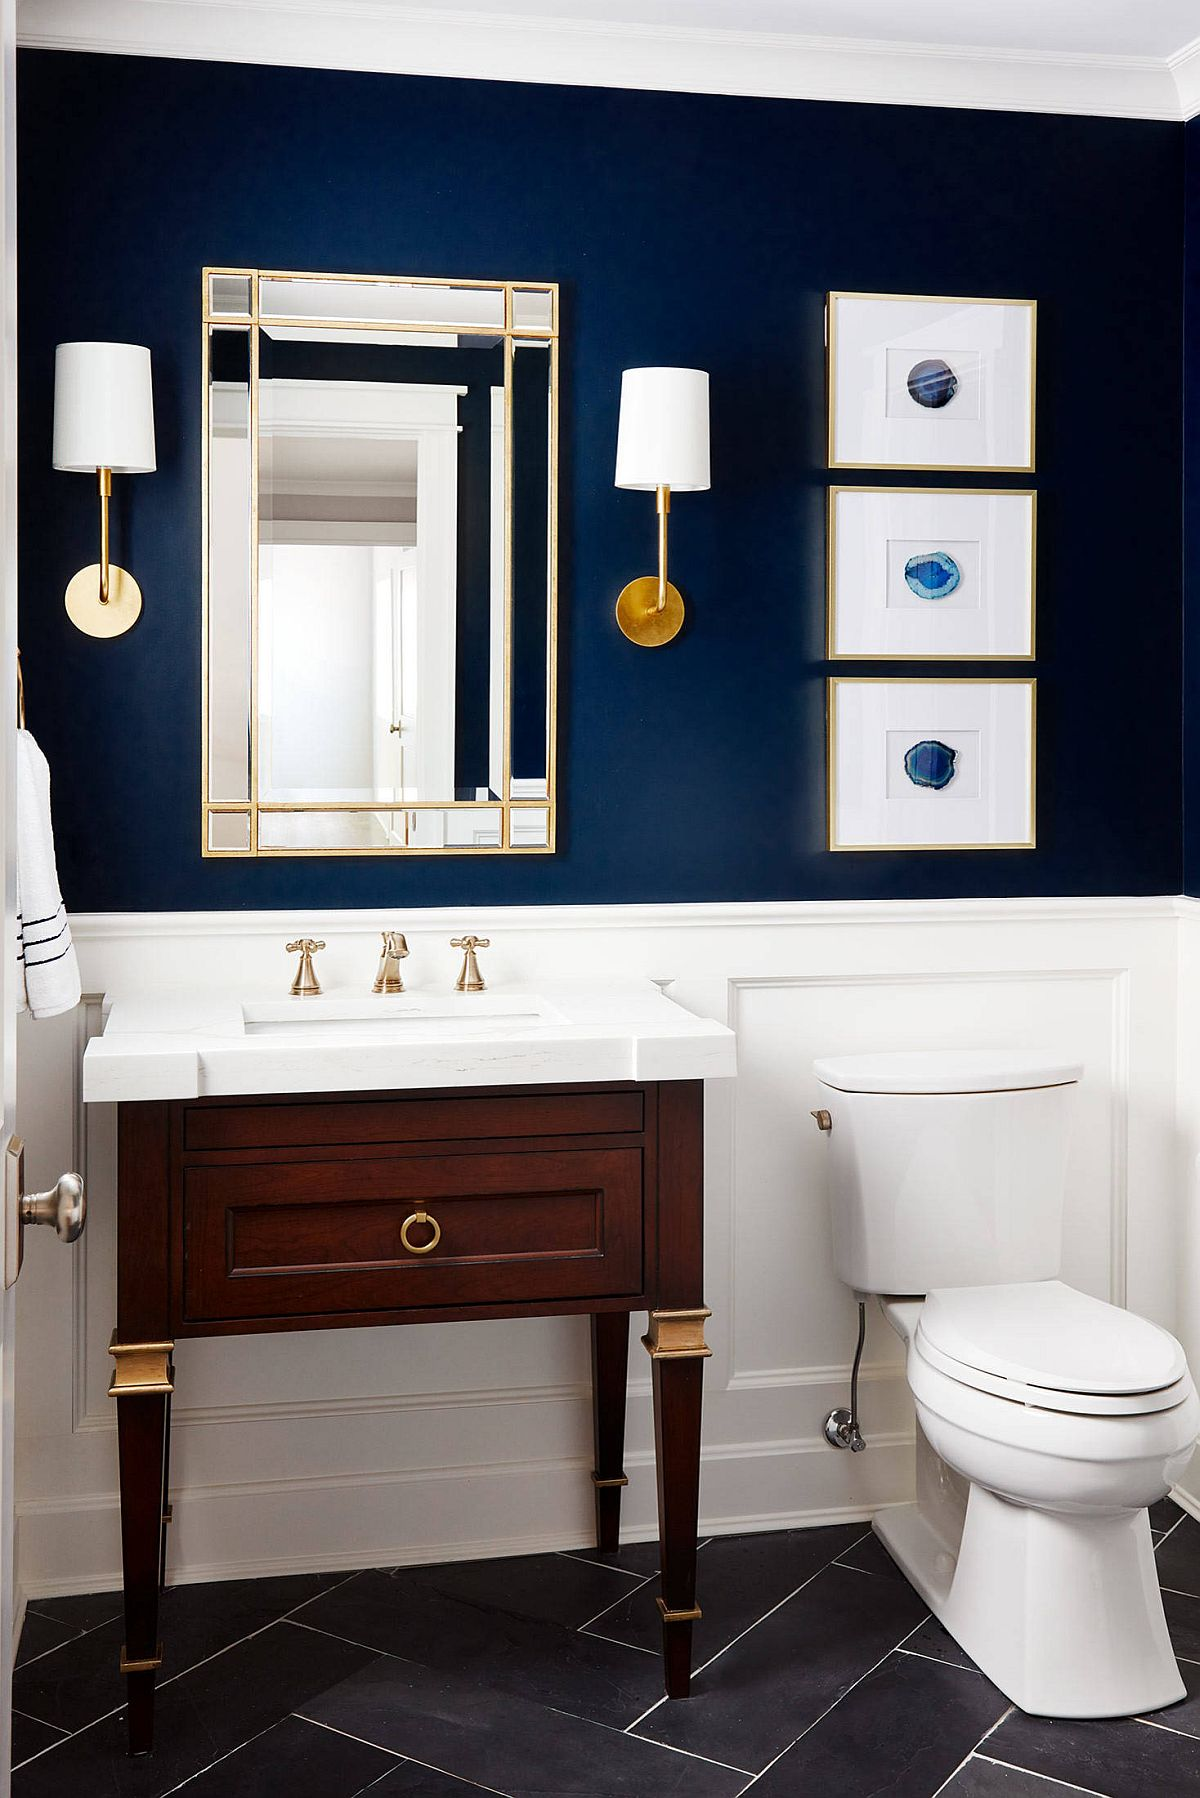 Bathroom Trends For 2020 25 Ideas And Inspirations For The New Year